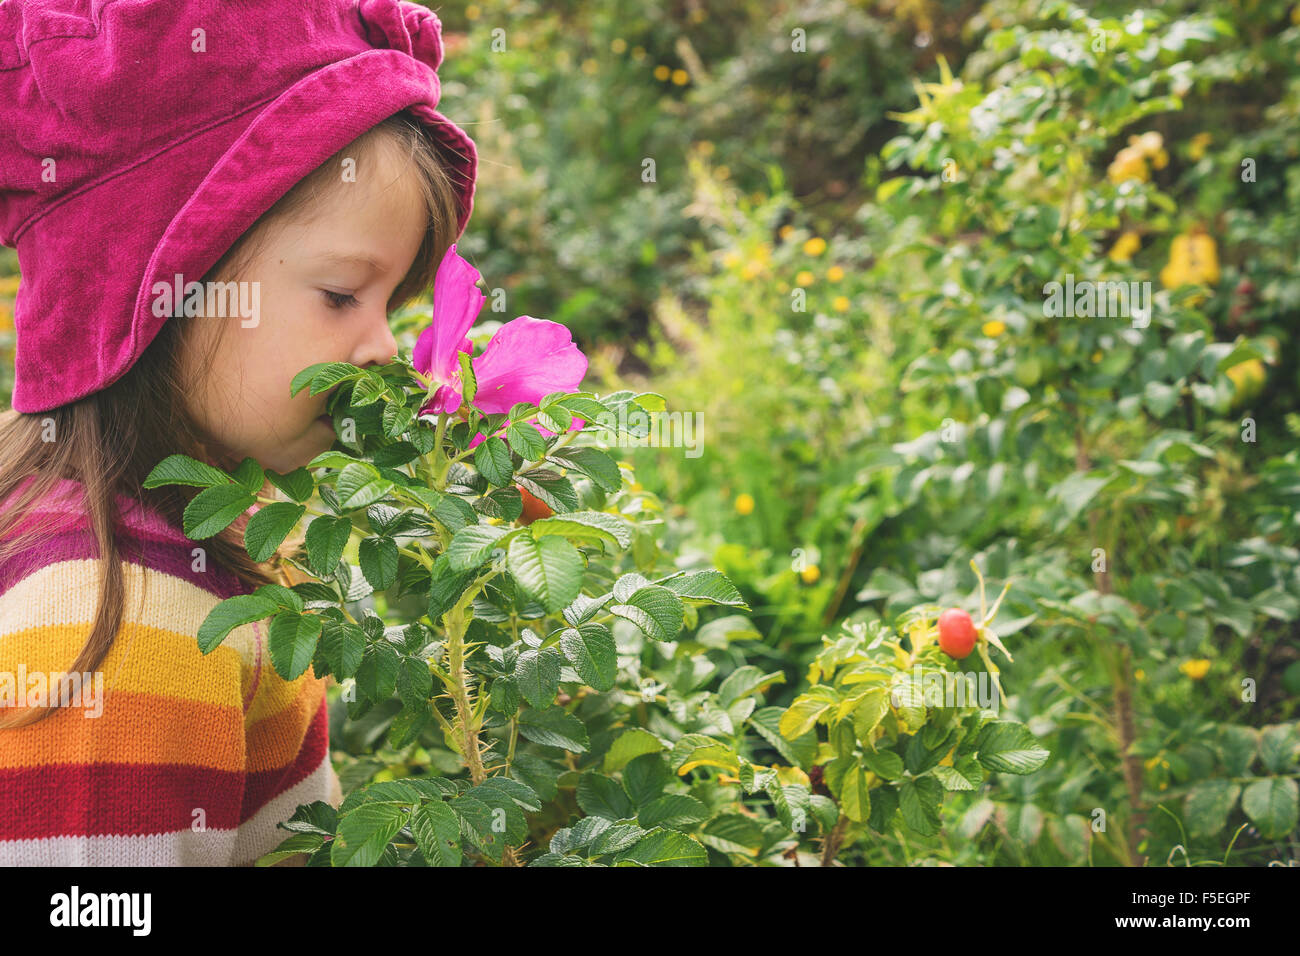 Girl smelling rosehip flower - Stock Image